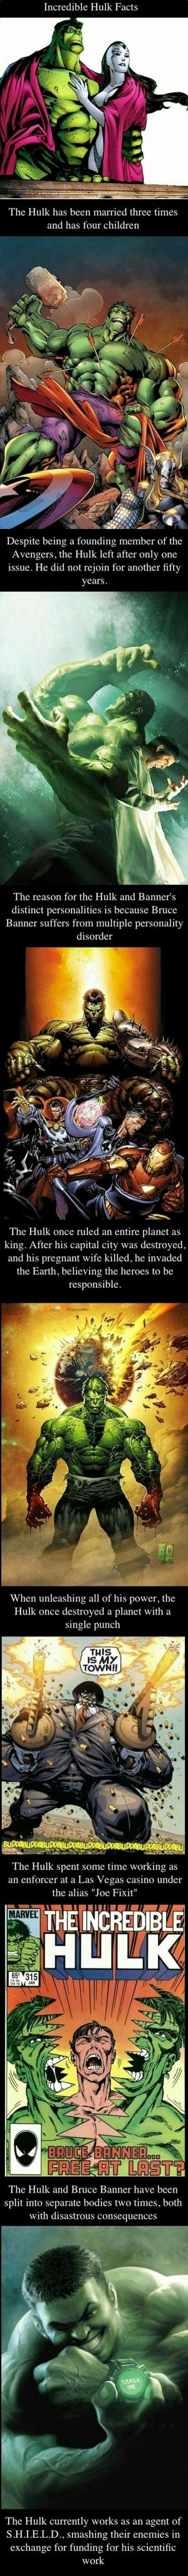 Hulk facts. Freaking awesome!